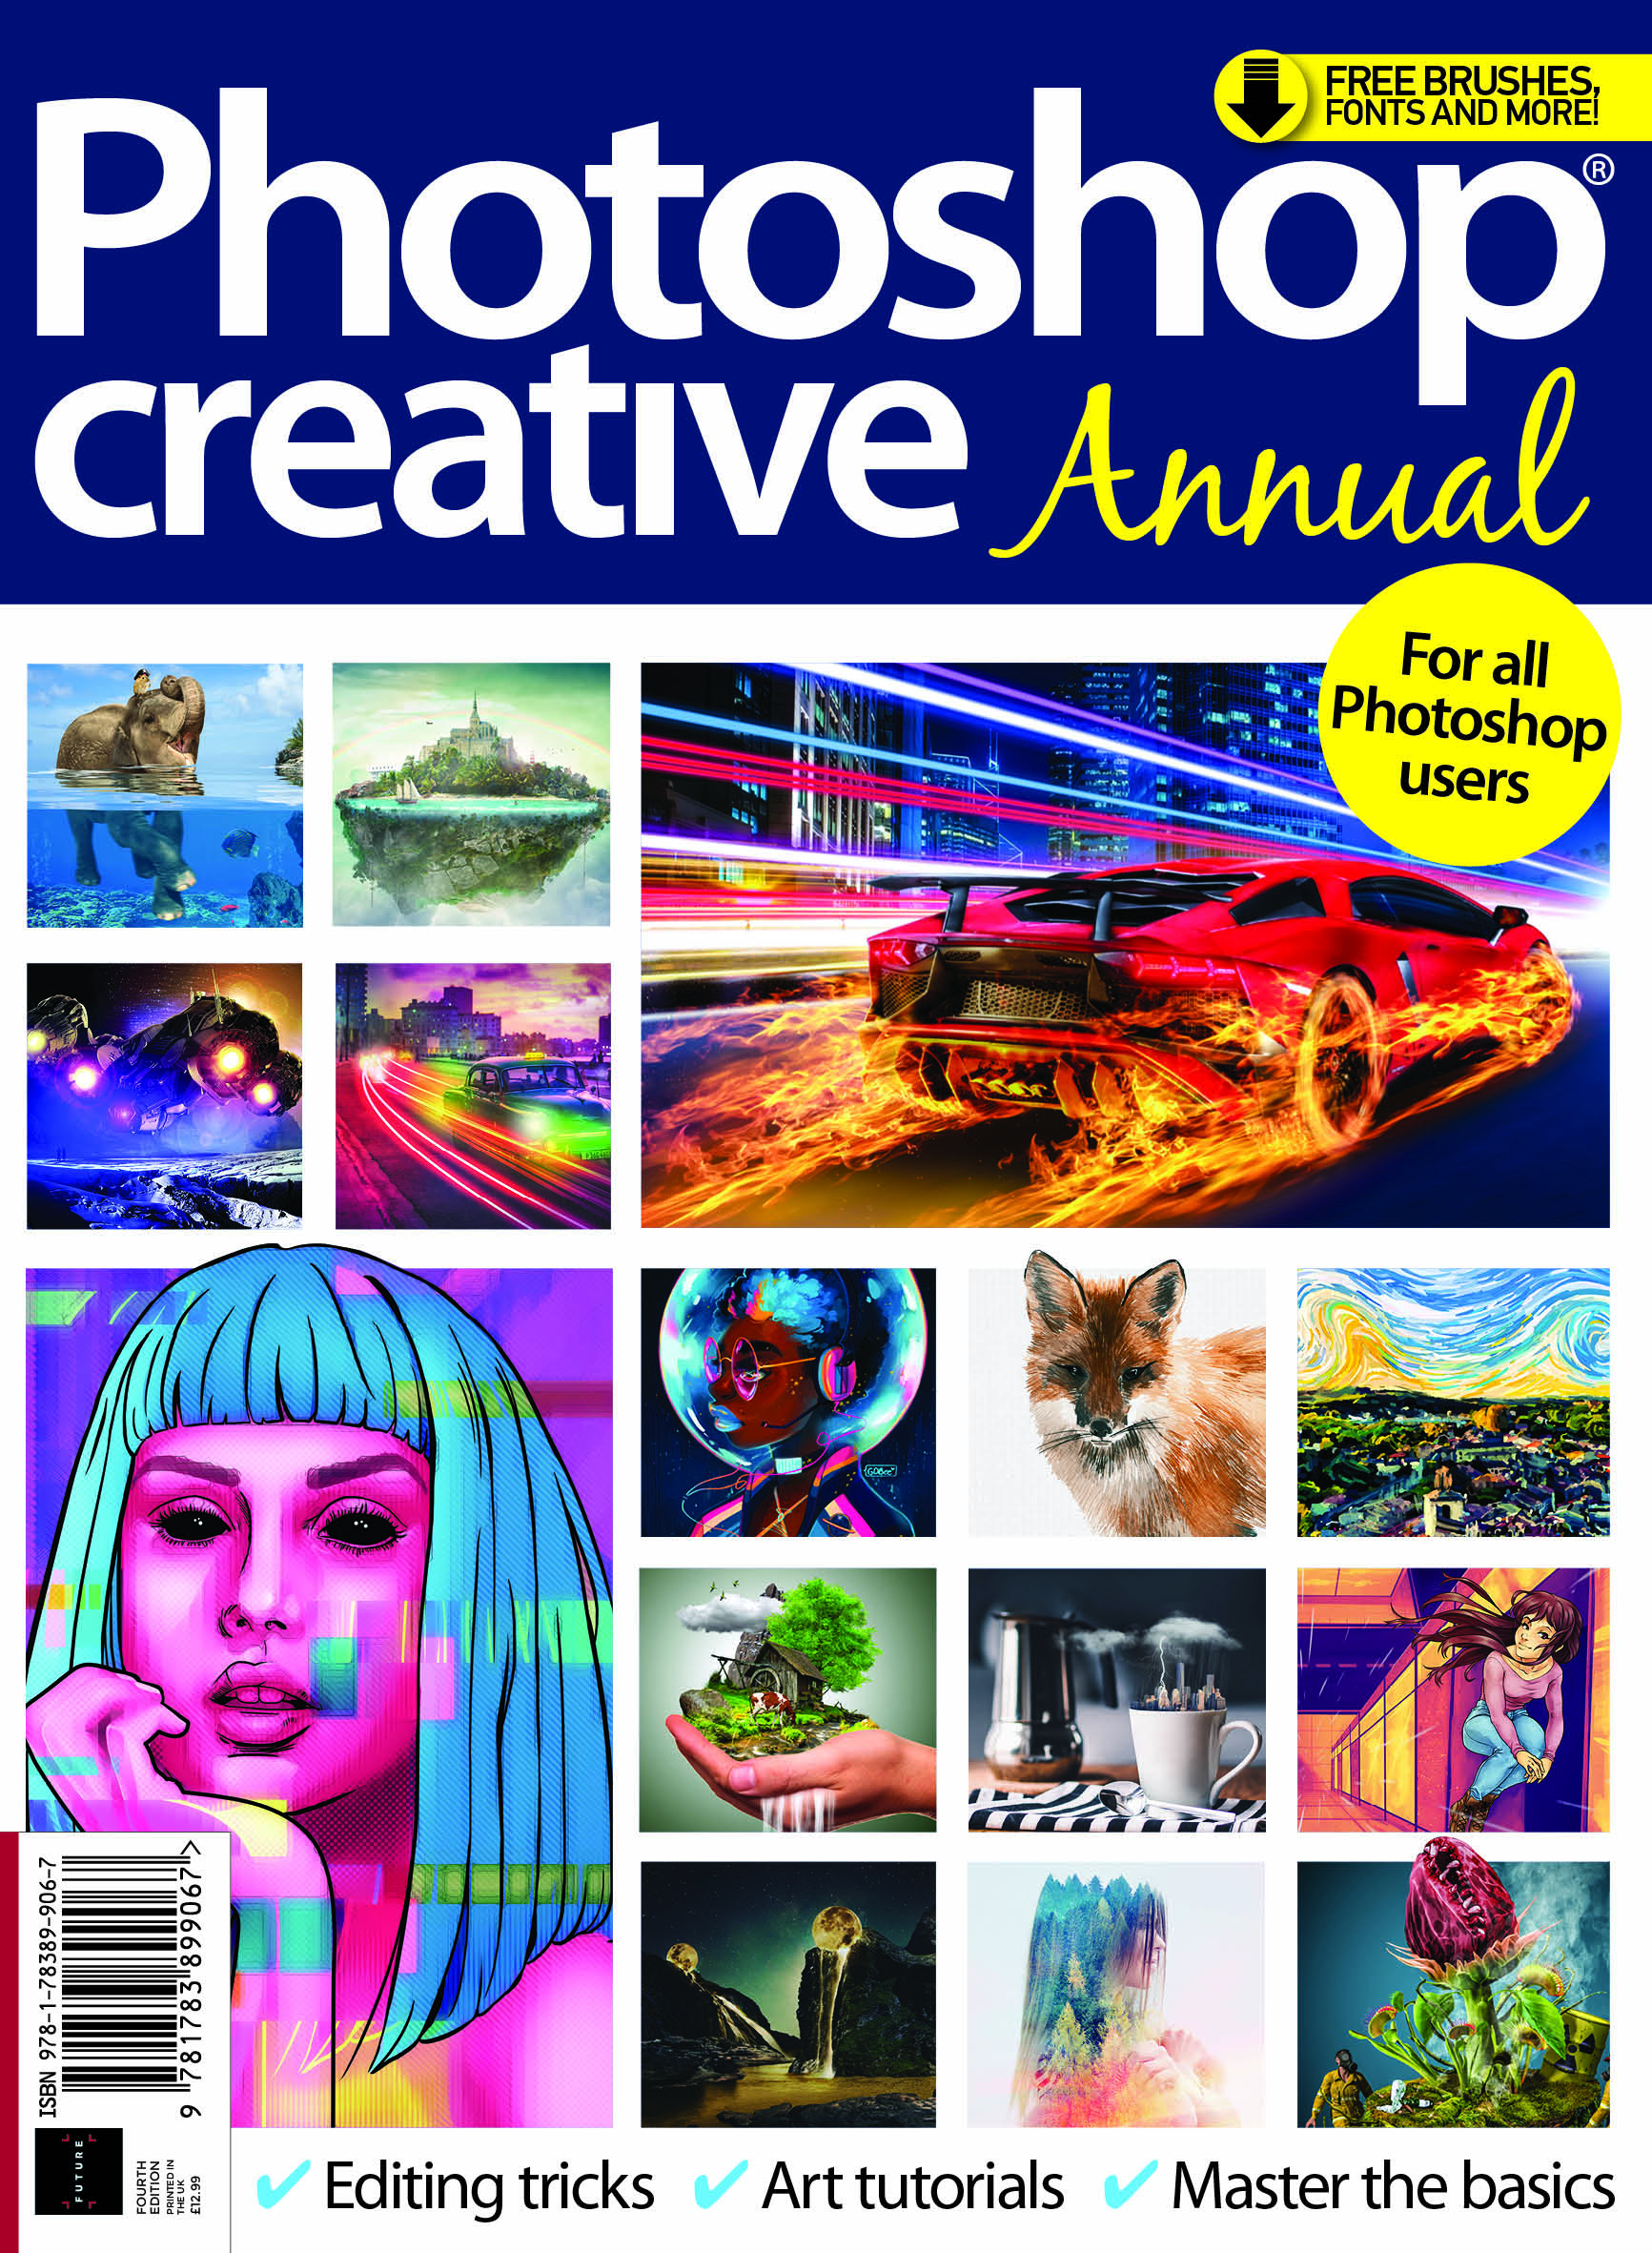 Photoshop Creative Annual Vol 4<